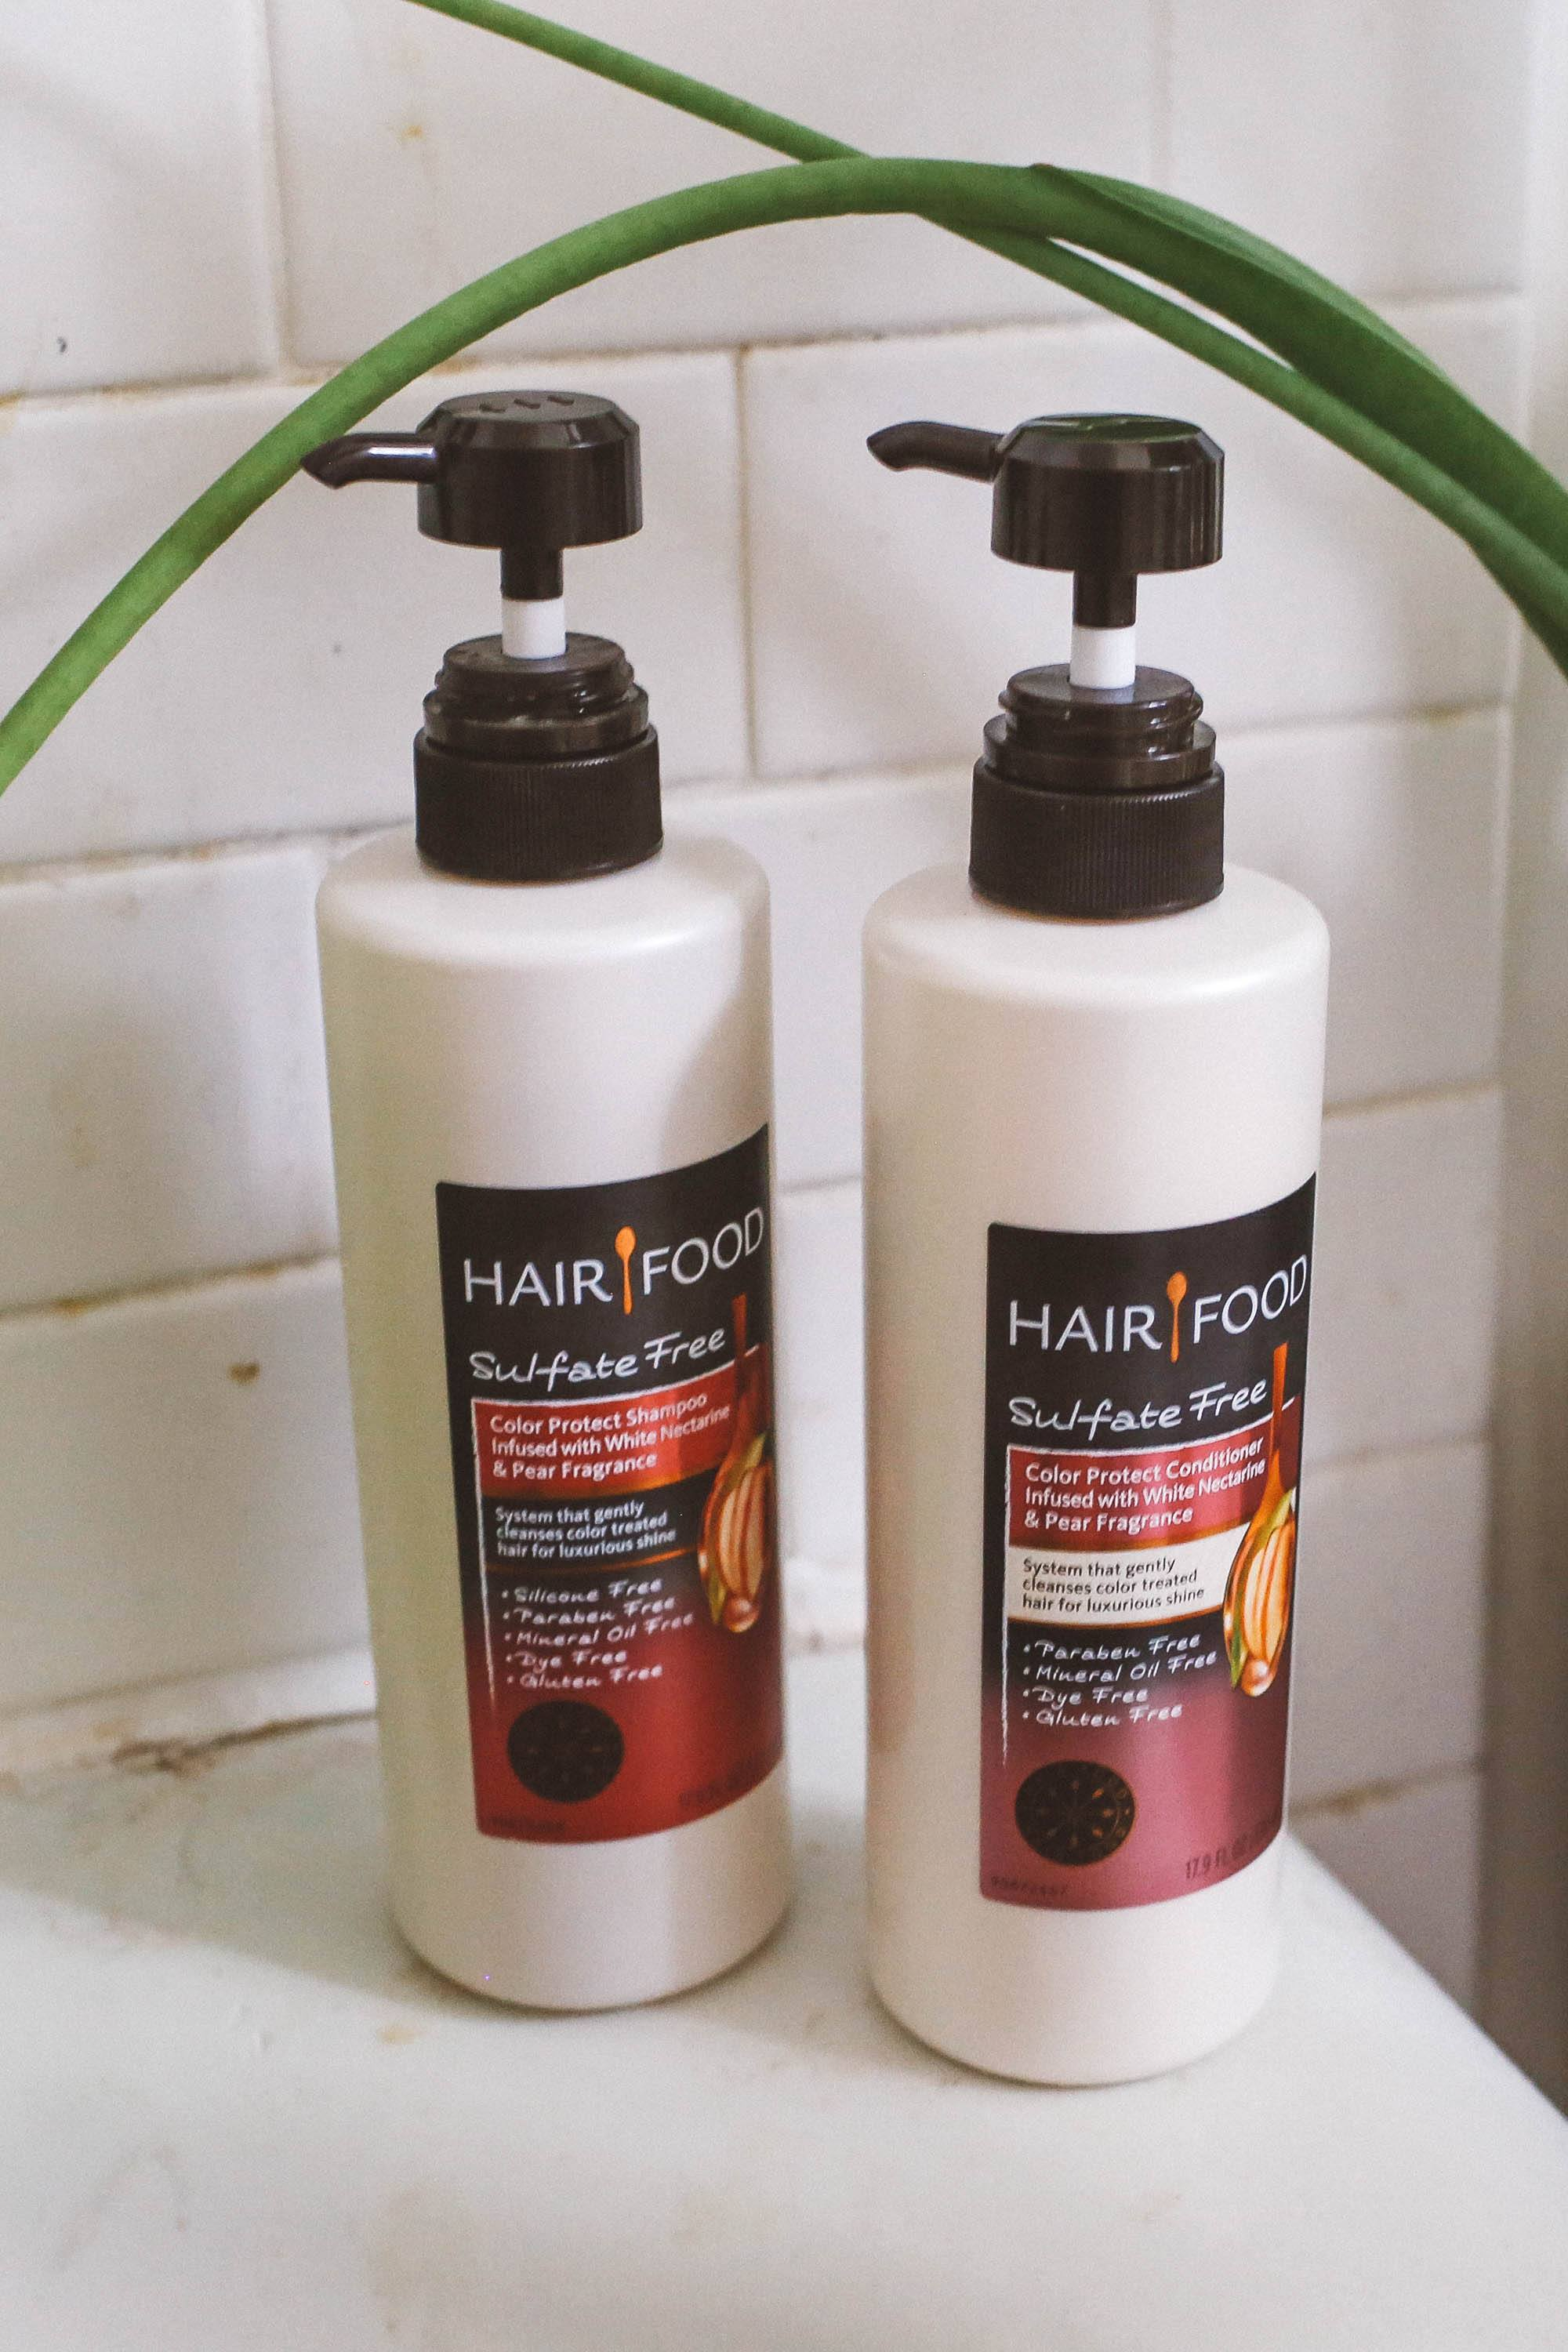 http://spr.ly/HairFoodCVS-352111